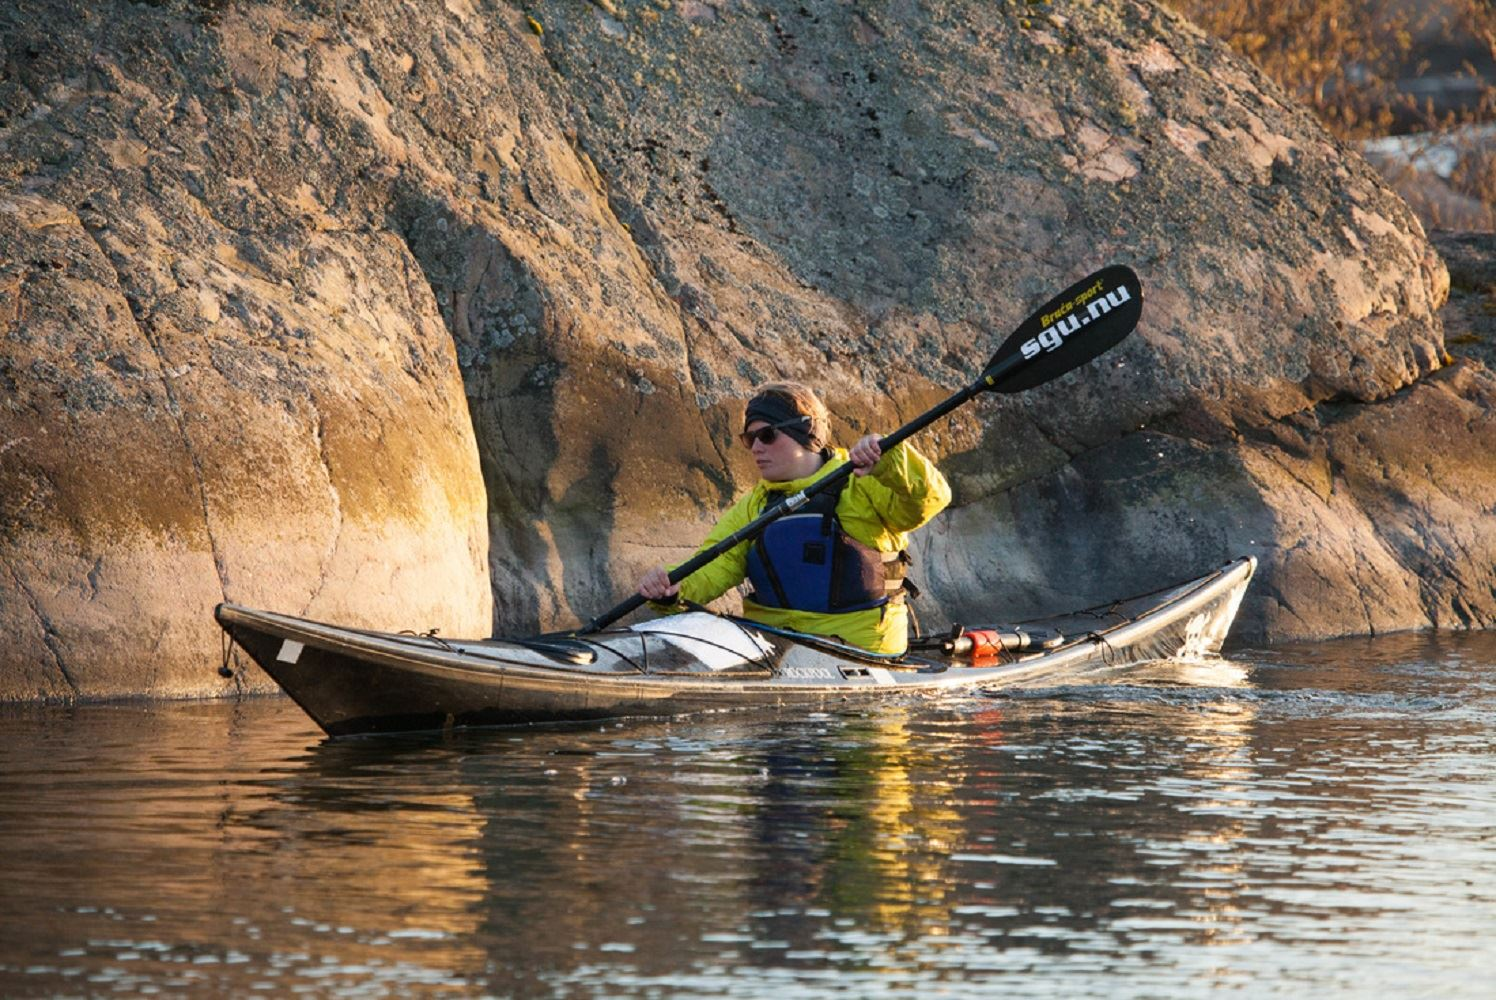 Course: Kayak 2 - paddling techniques